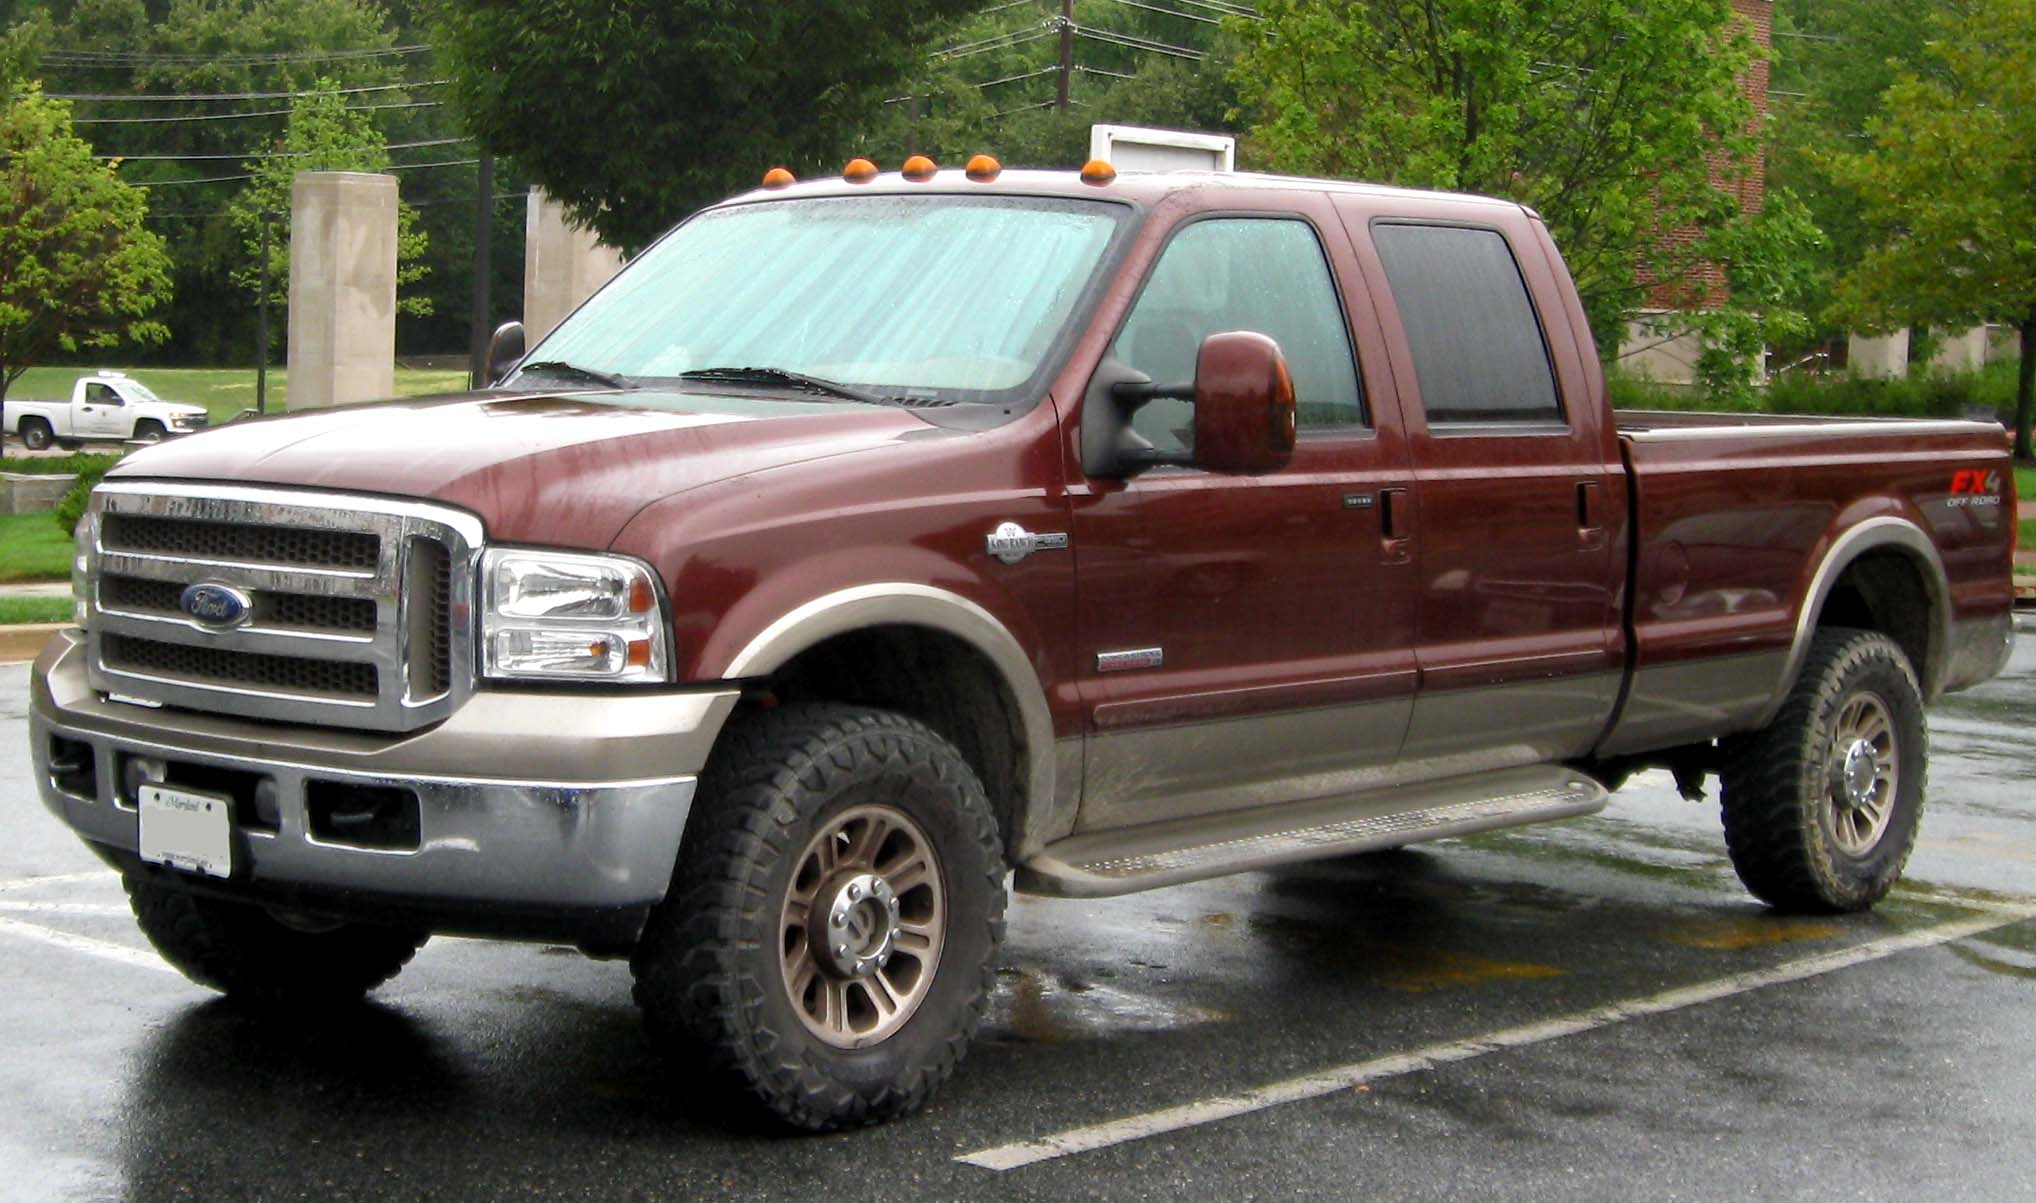 2003 Ford F 350 Super Duty Photos Informations Articles 2001 Dodge Ram Fuel Filter Location 15